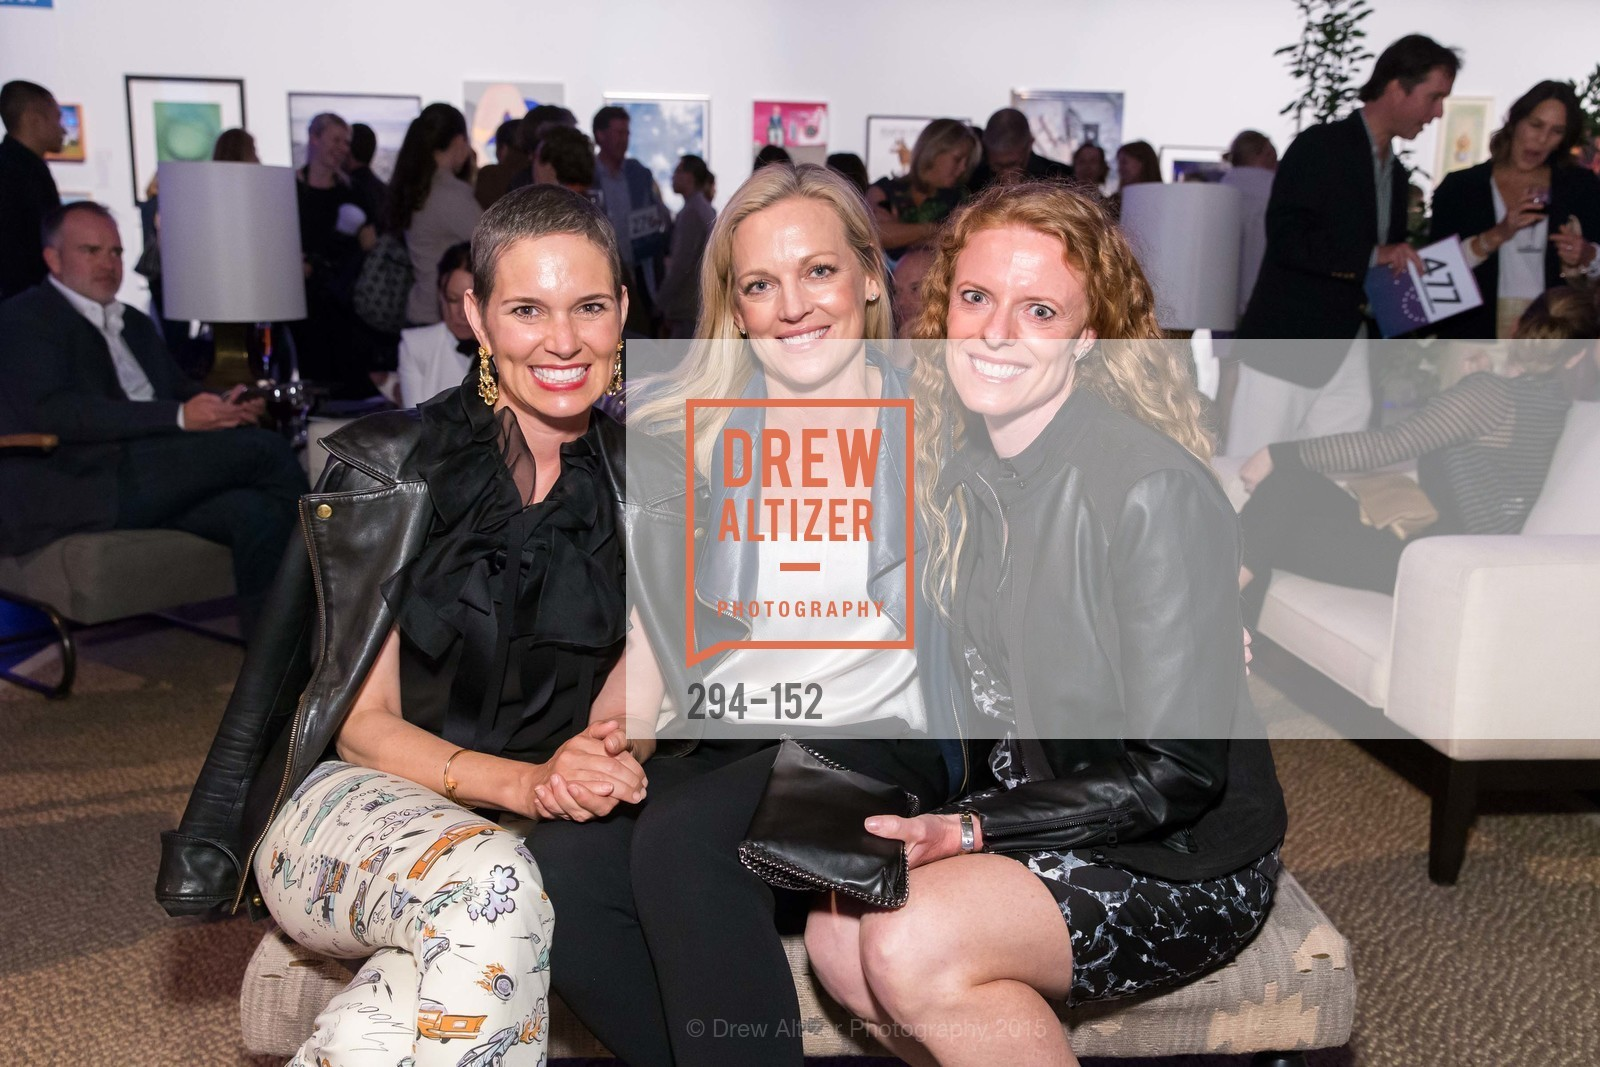 Susan Moody, Maja Smith, Sarah Dilullo, Headlands Center for the Arts Benefit Auction, Fort Mason Festival, Pavilon, June 2nd, 2015,Drew Altizer, Drew Altizer Photography, full-service agency, private events, San Francisco photographer, photographer california